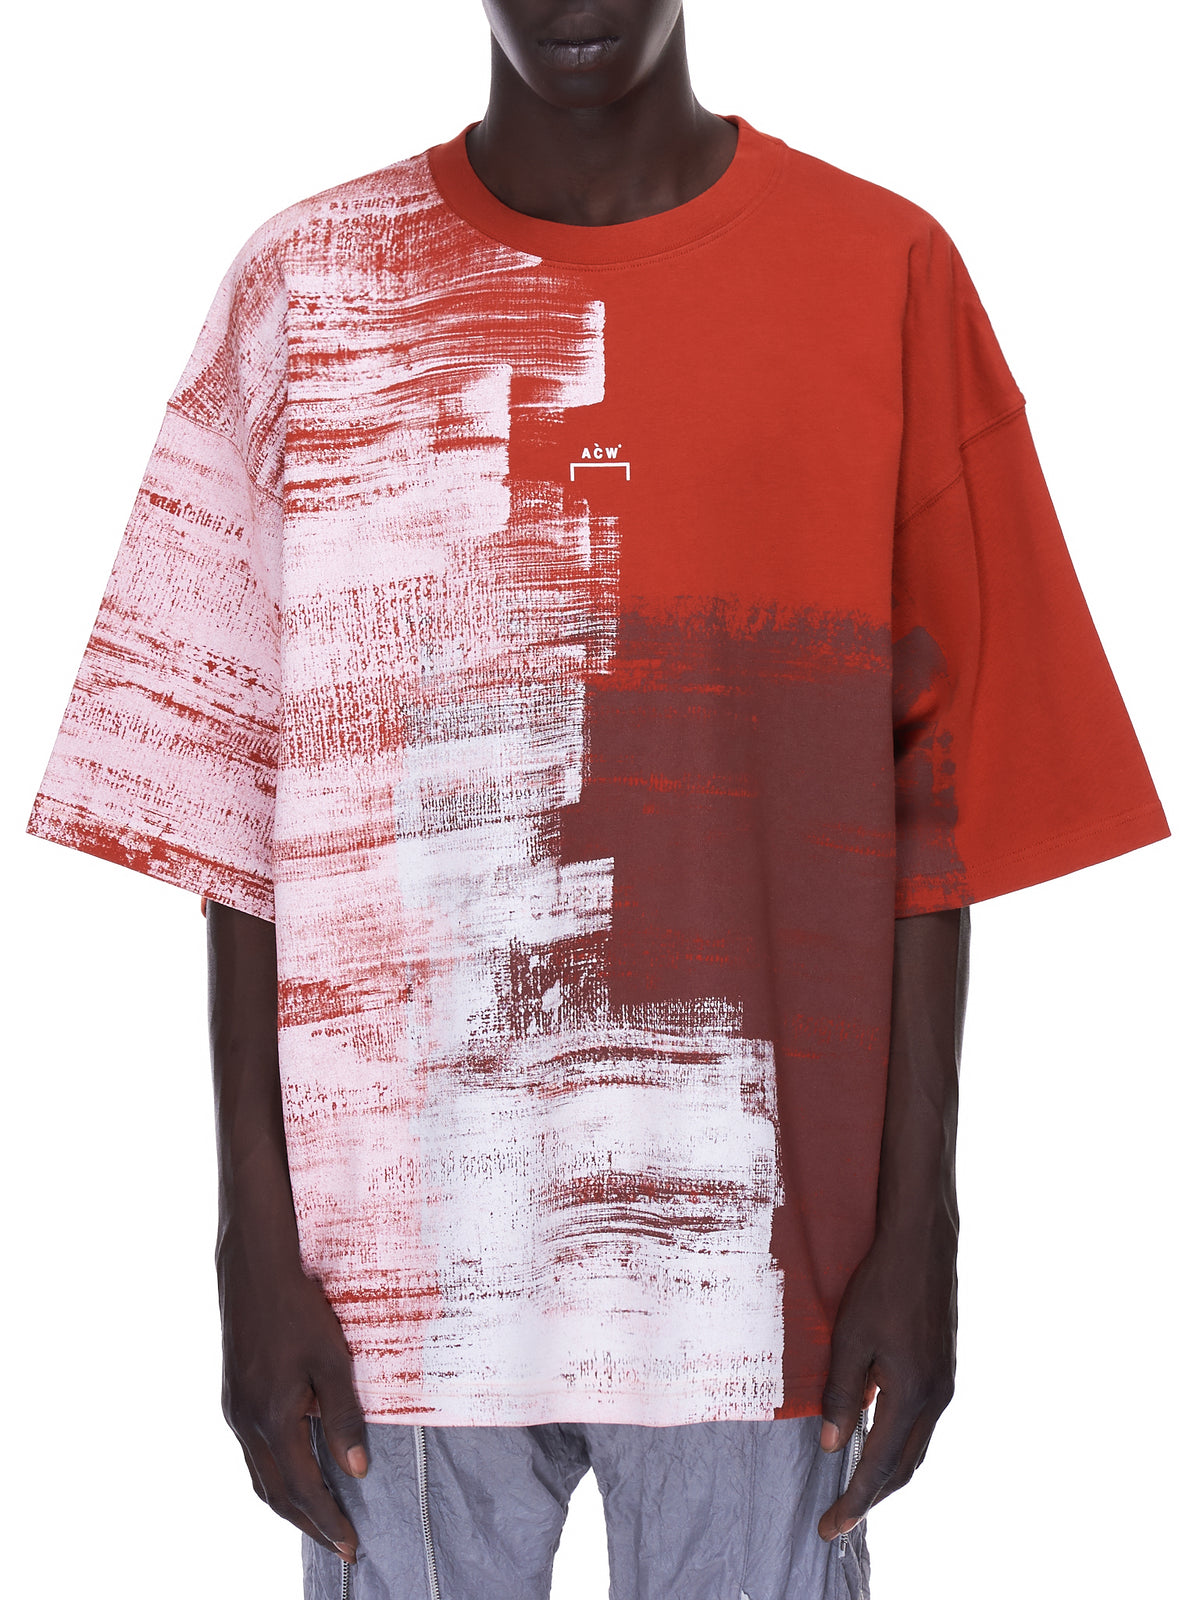 Brush Stroke T-Shirt (MTS032-RUST-OXIDE)